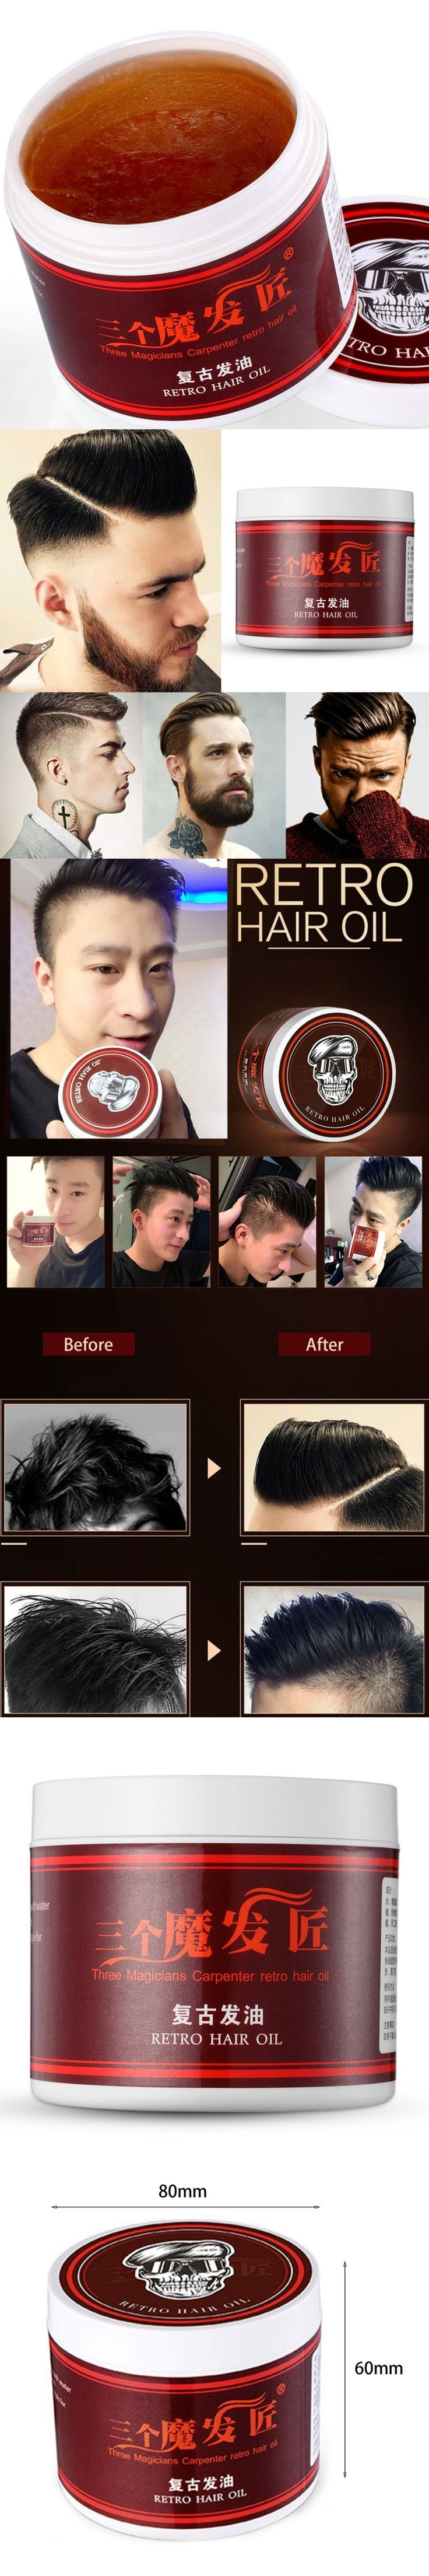 Retro Hair Oil Pomade Strong Restoring Pomade Long Lasting Hair Cream Keep Hair Style Slicked Oil Mud For Men